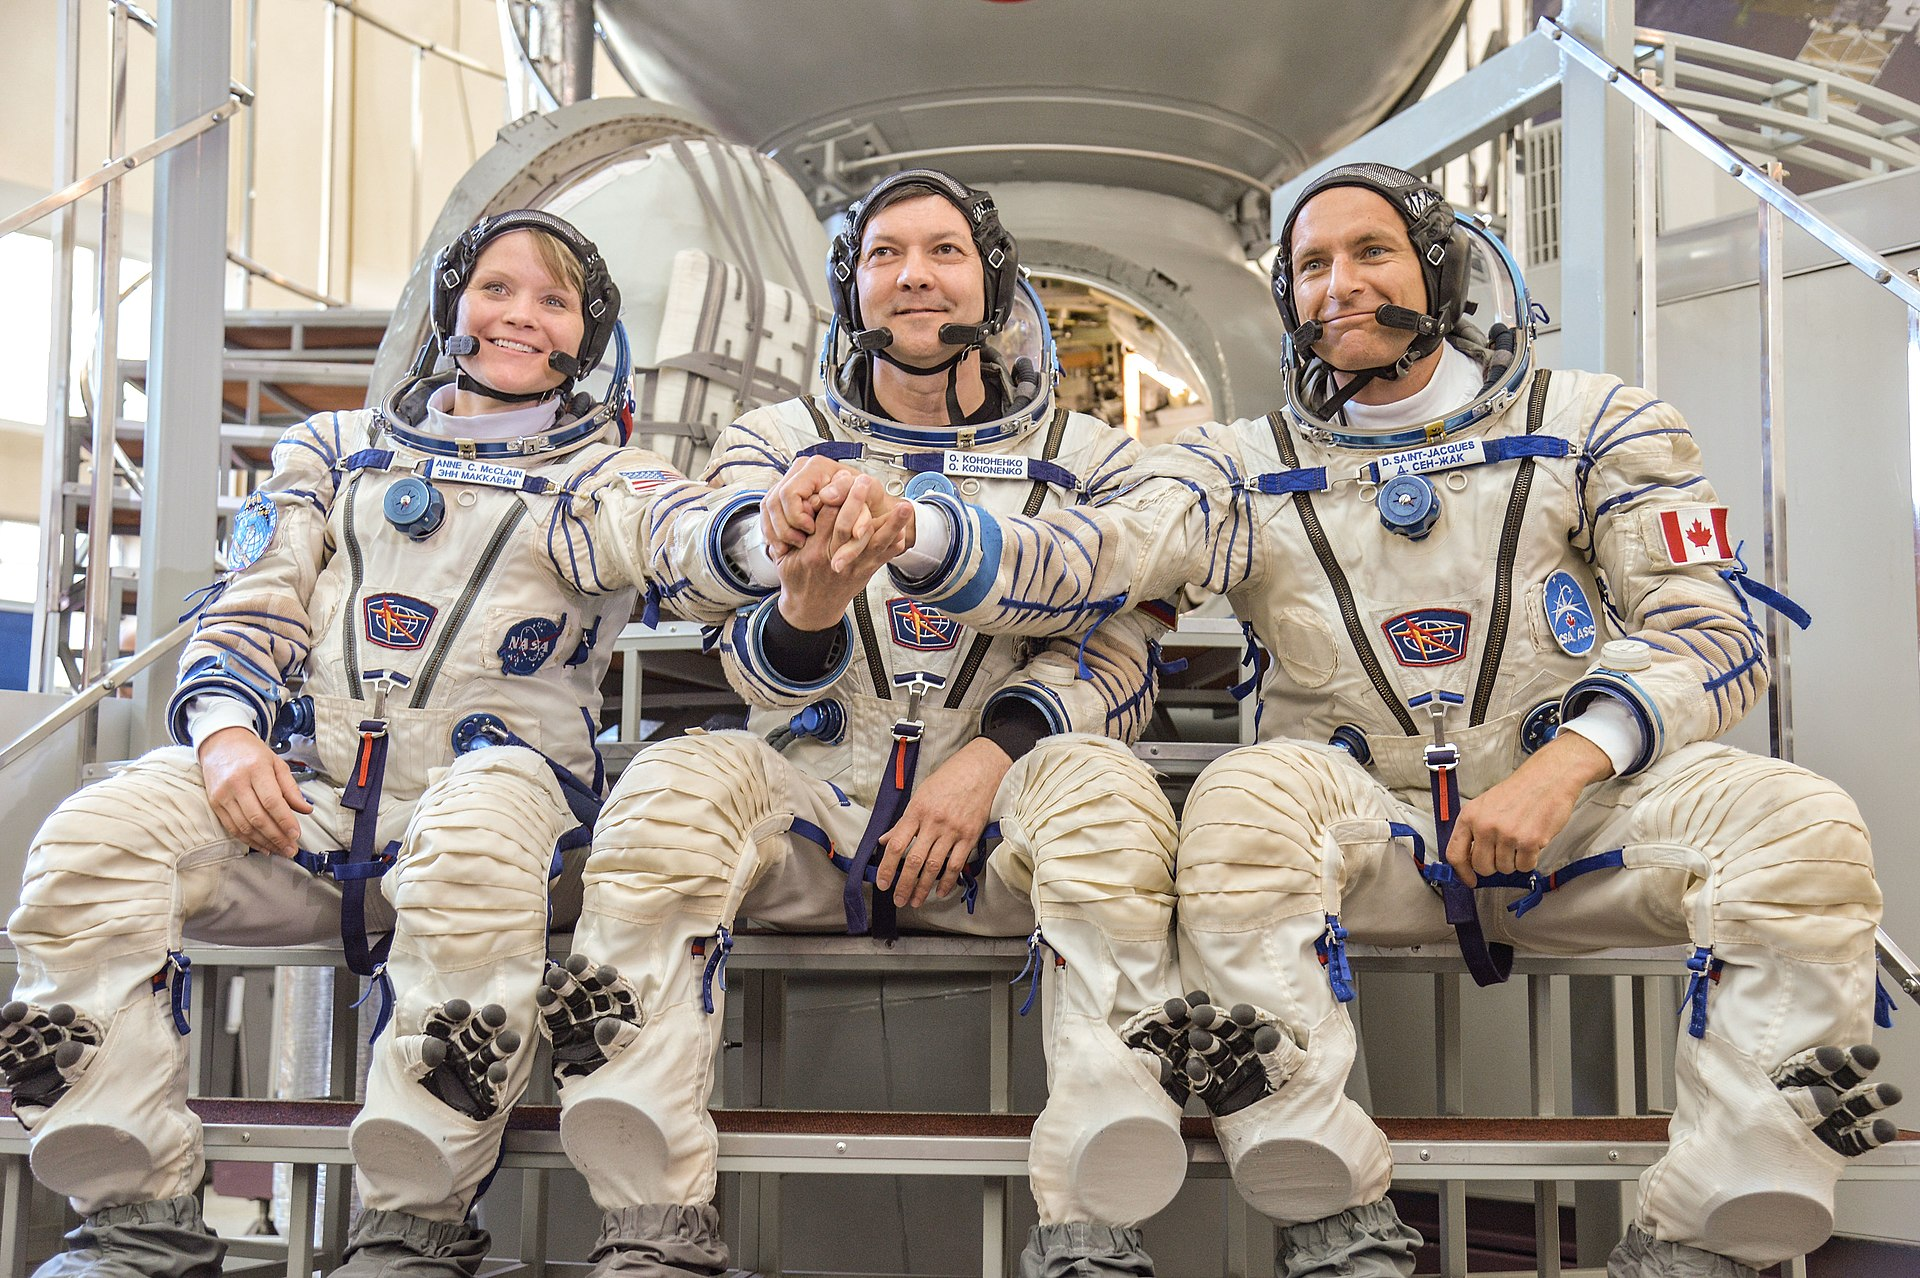 NASA astronaut Anne McClain, left, Russian cosmonaut Oleg Kononenko, center, and Canadian Space Agency astronaut David Saint-Jacques post for pictures in front of a Soyuz training module after their spacecraft qualification exams. Credit: NASA/Elizabeth Weissinger